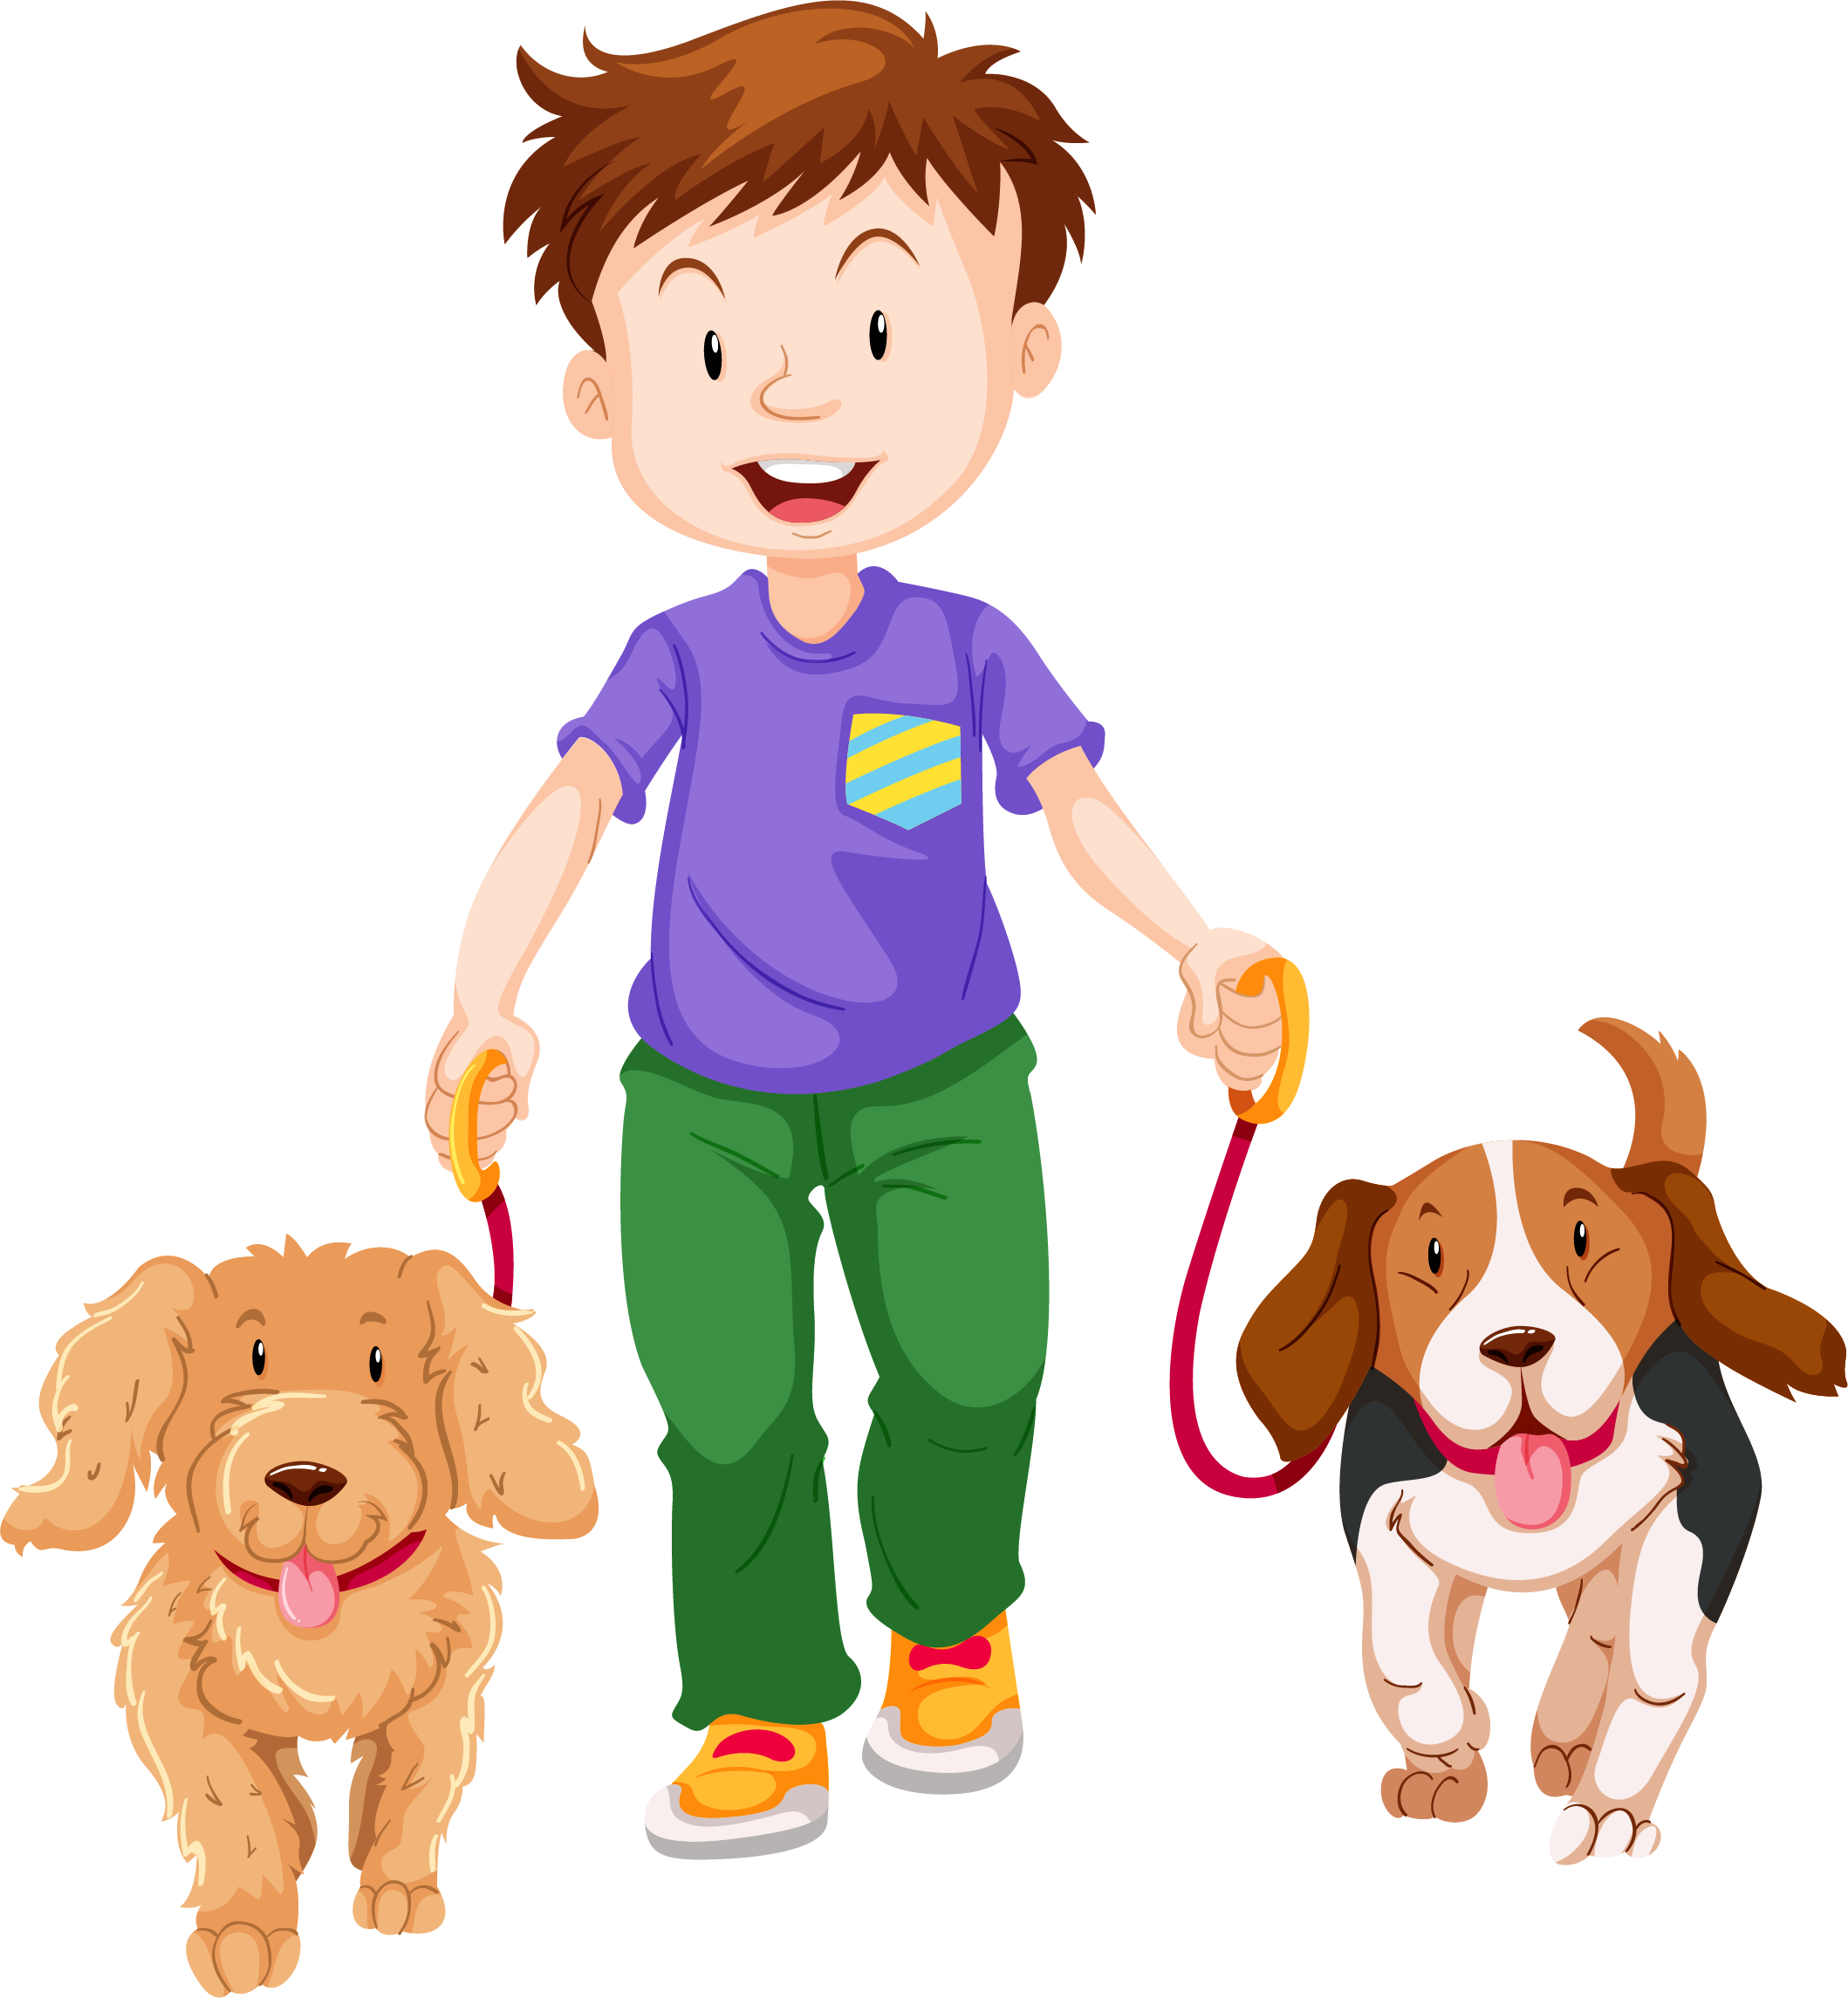 Dog walking clipart free graphic black and white download Walking Boy Cartoon - Alpha Beta Demo graphic black and white download